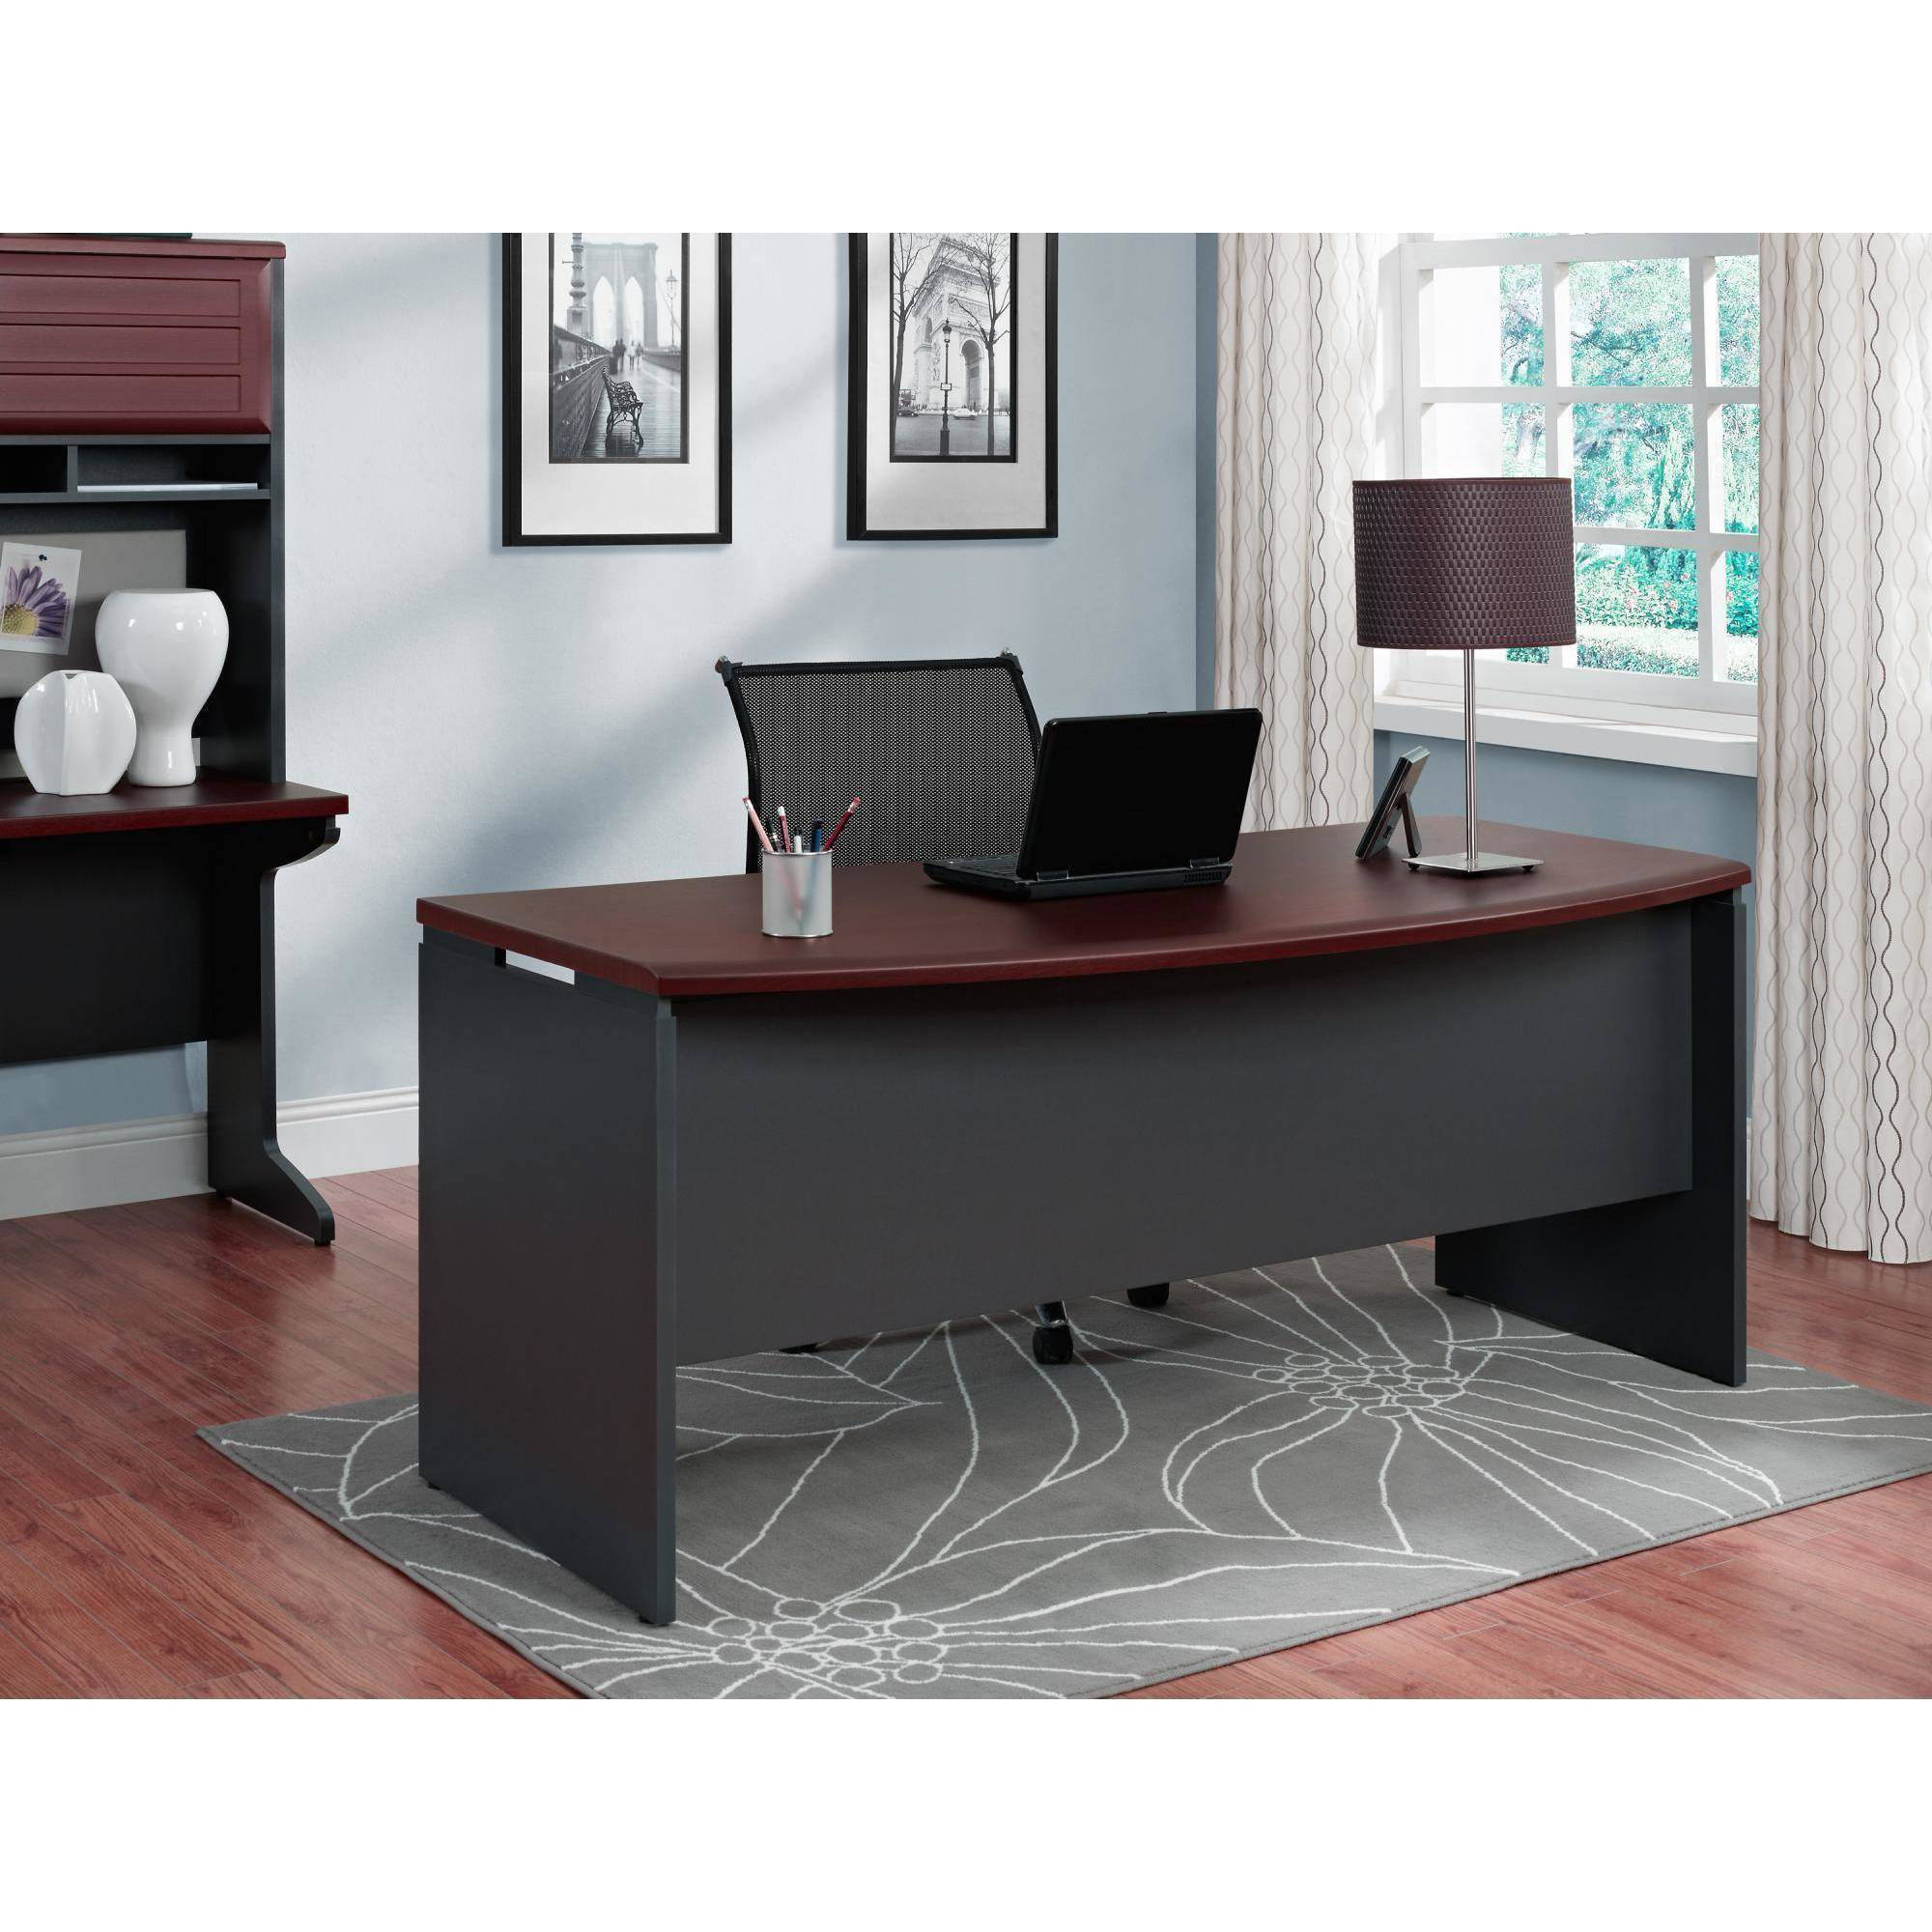 Ameriwood home pursuit executive desk cherry gray walmart com